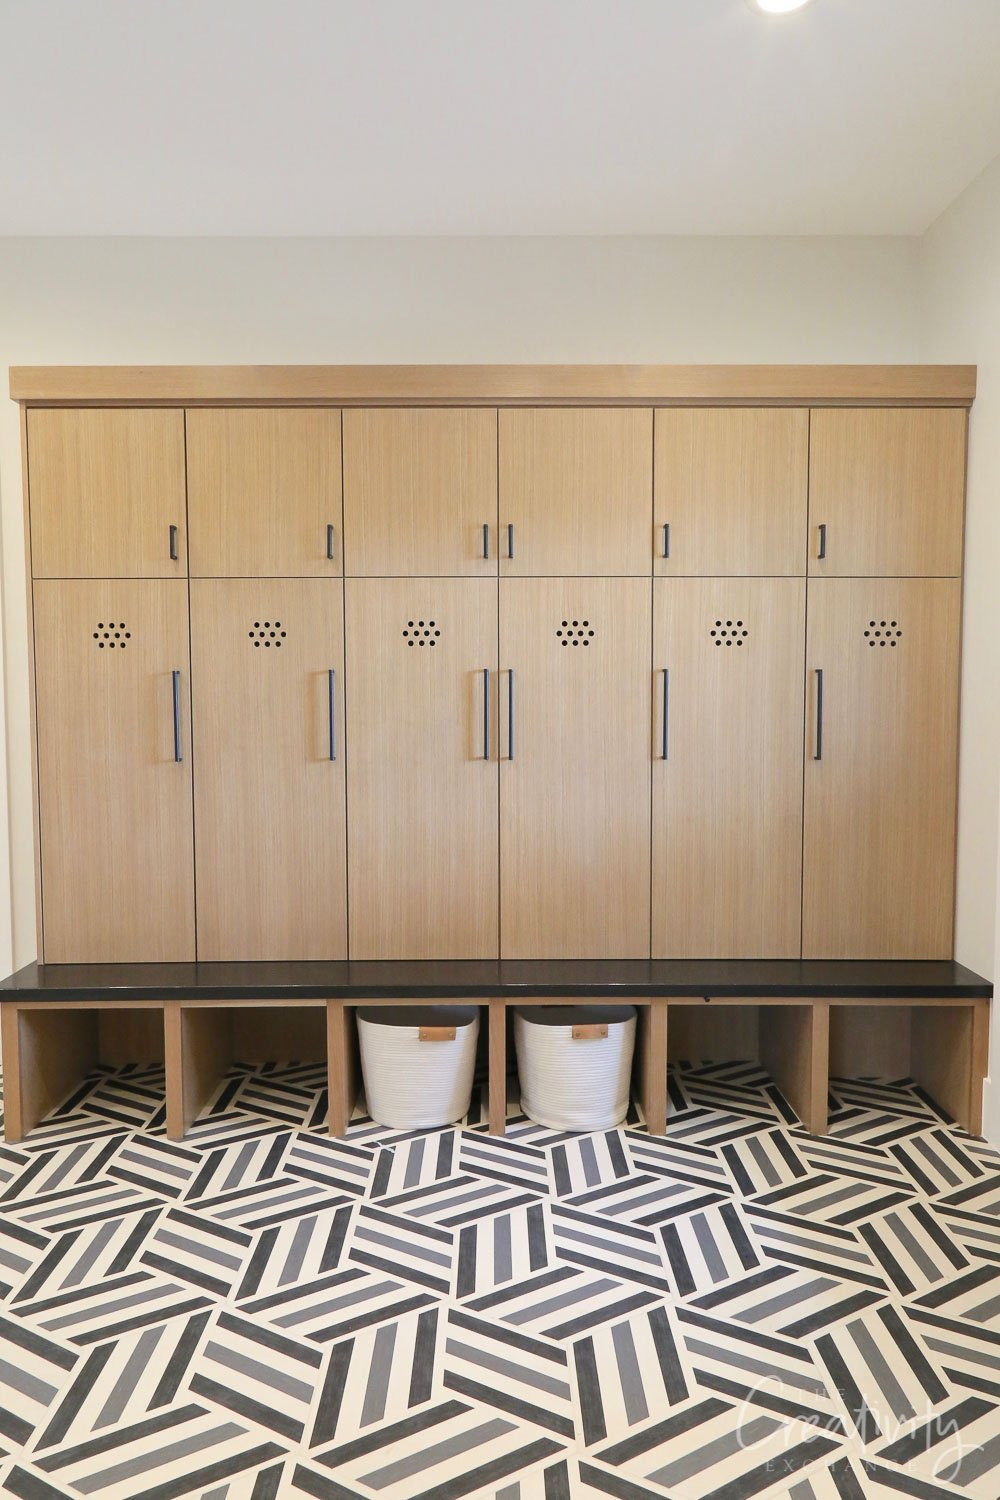 Mudroom with oak storage lockers and cement tile